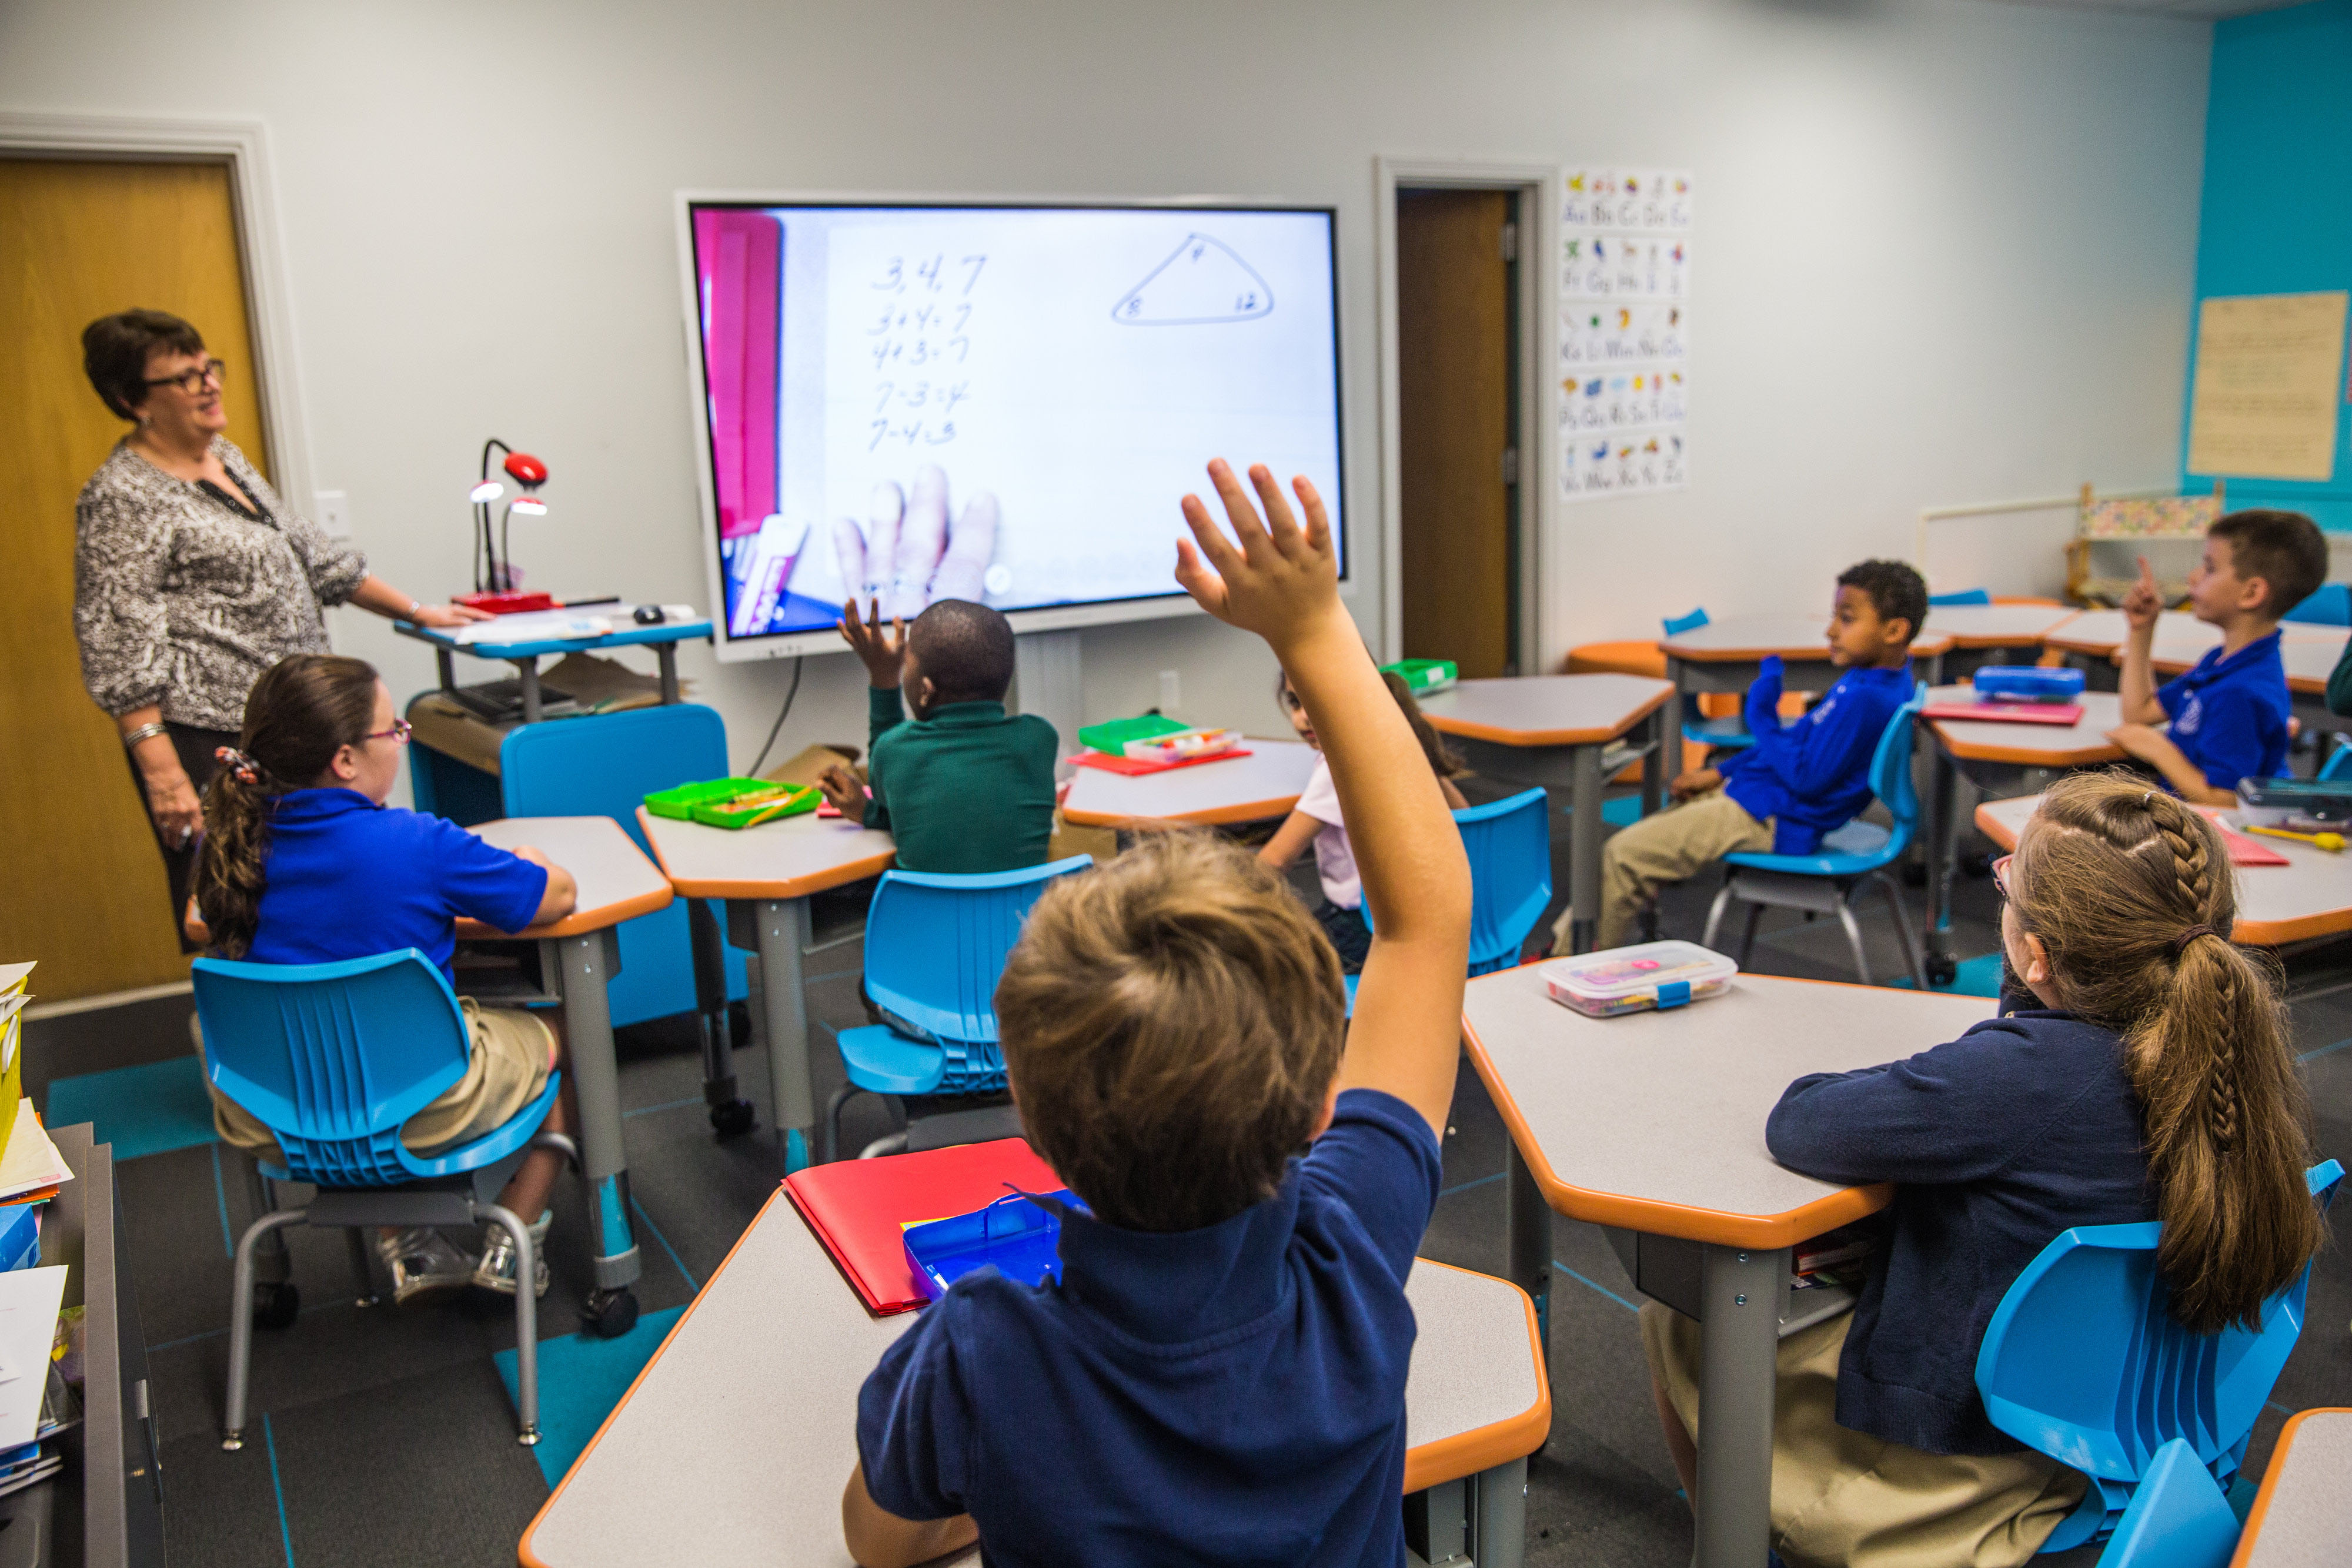 Students at desk; boy with raised hand